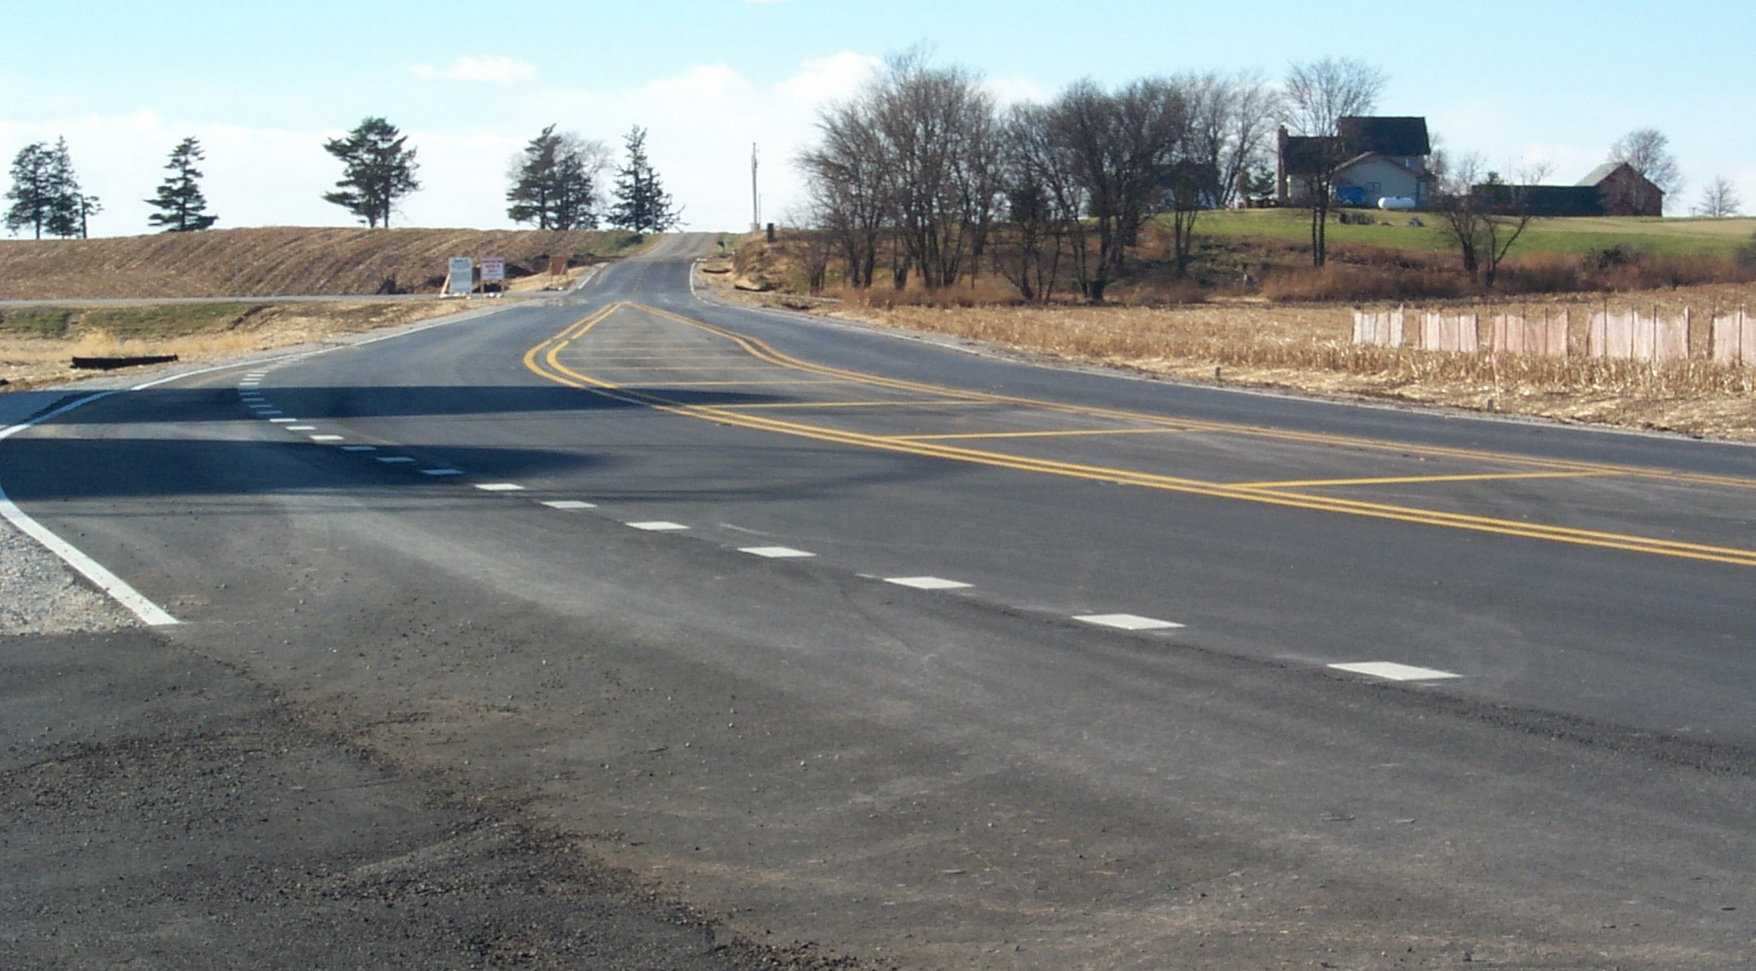 <h1>Mathew Road & Us Rt. 30</h1>